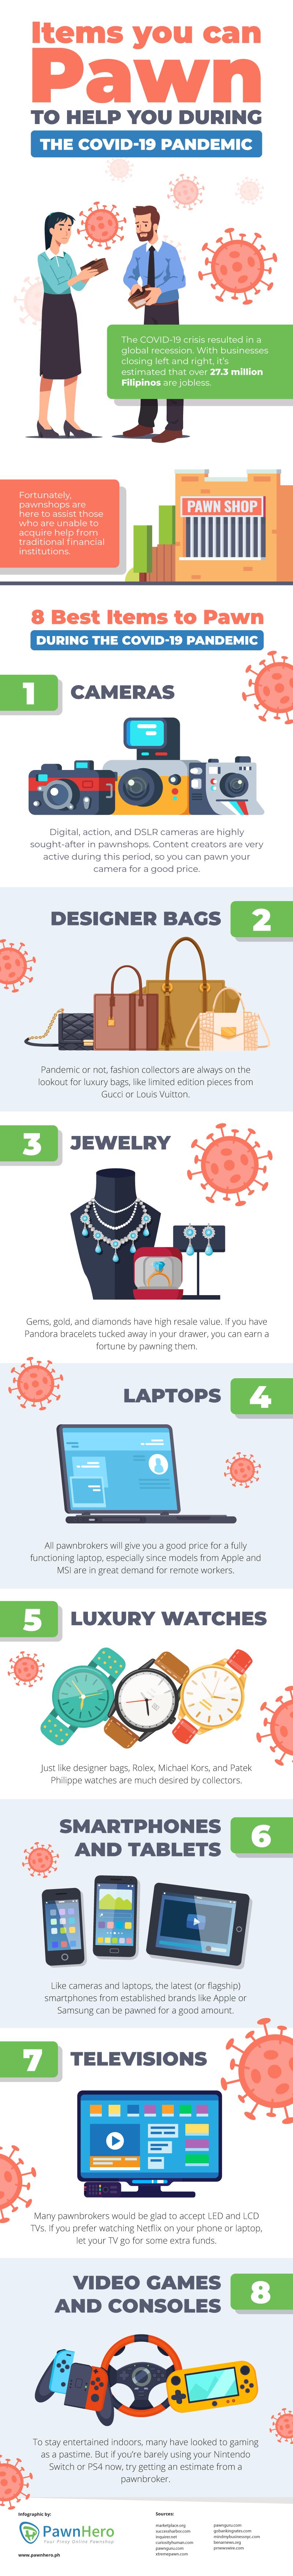 Items You Can Pawn to Help You During the COVID-19 Pandemic - Infographic